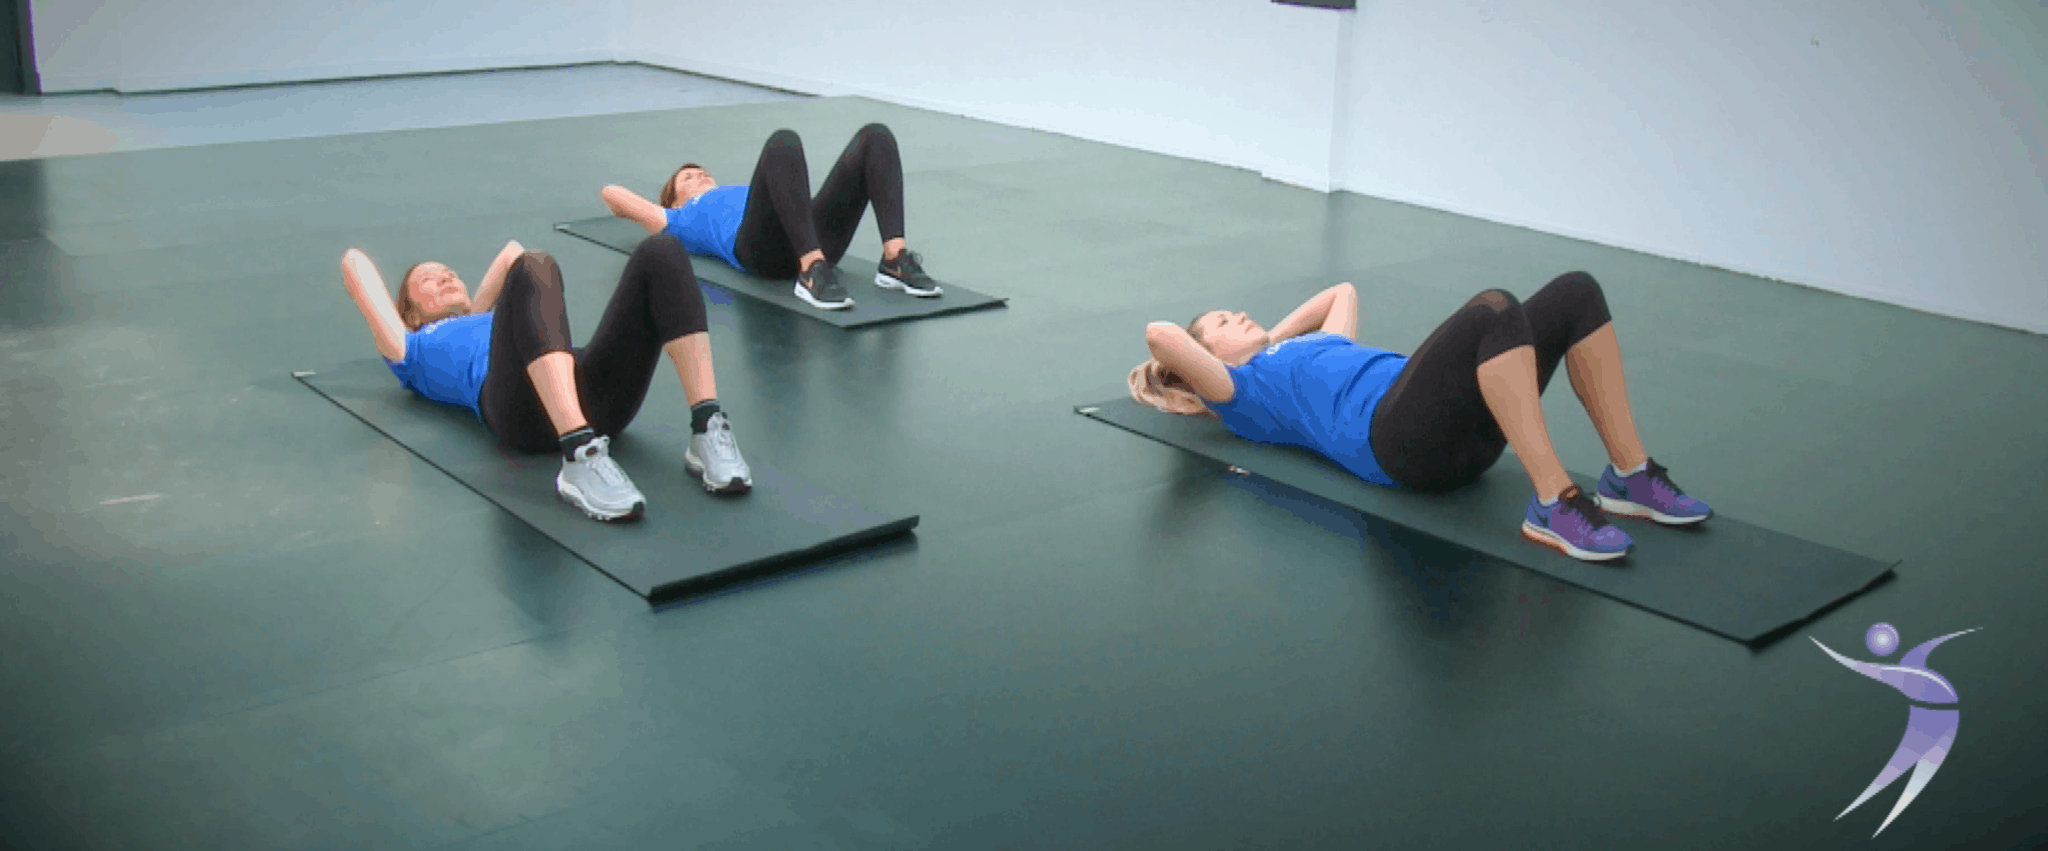 Strength: Why is it important to work on your core?